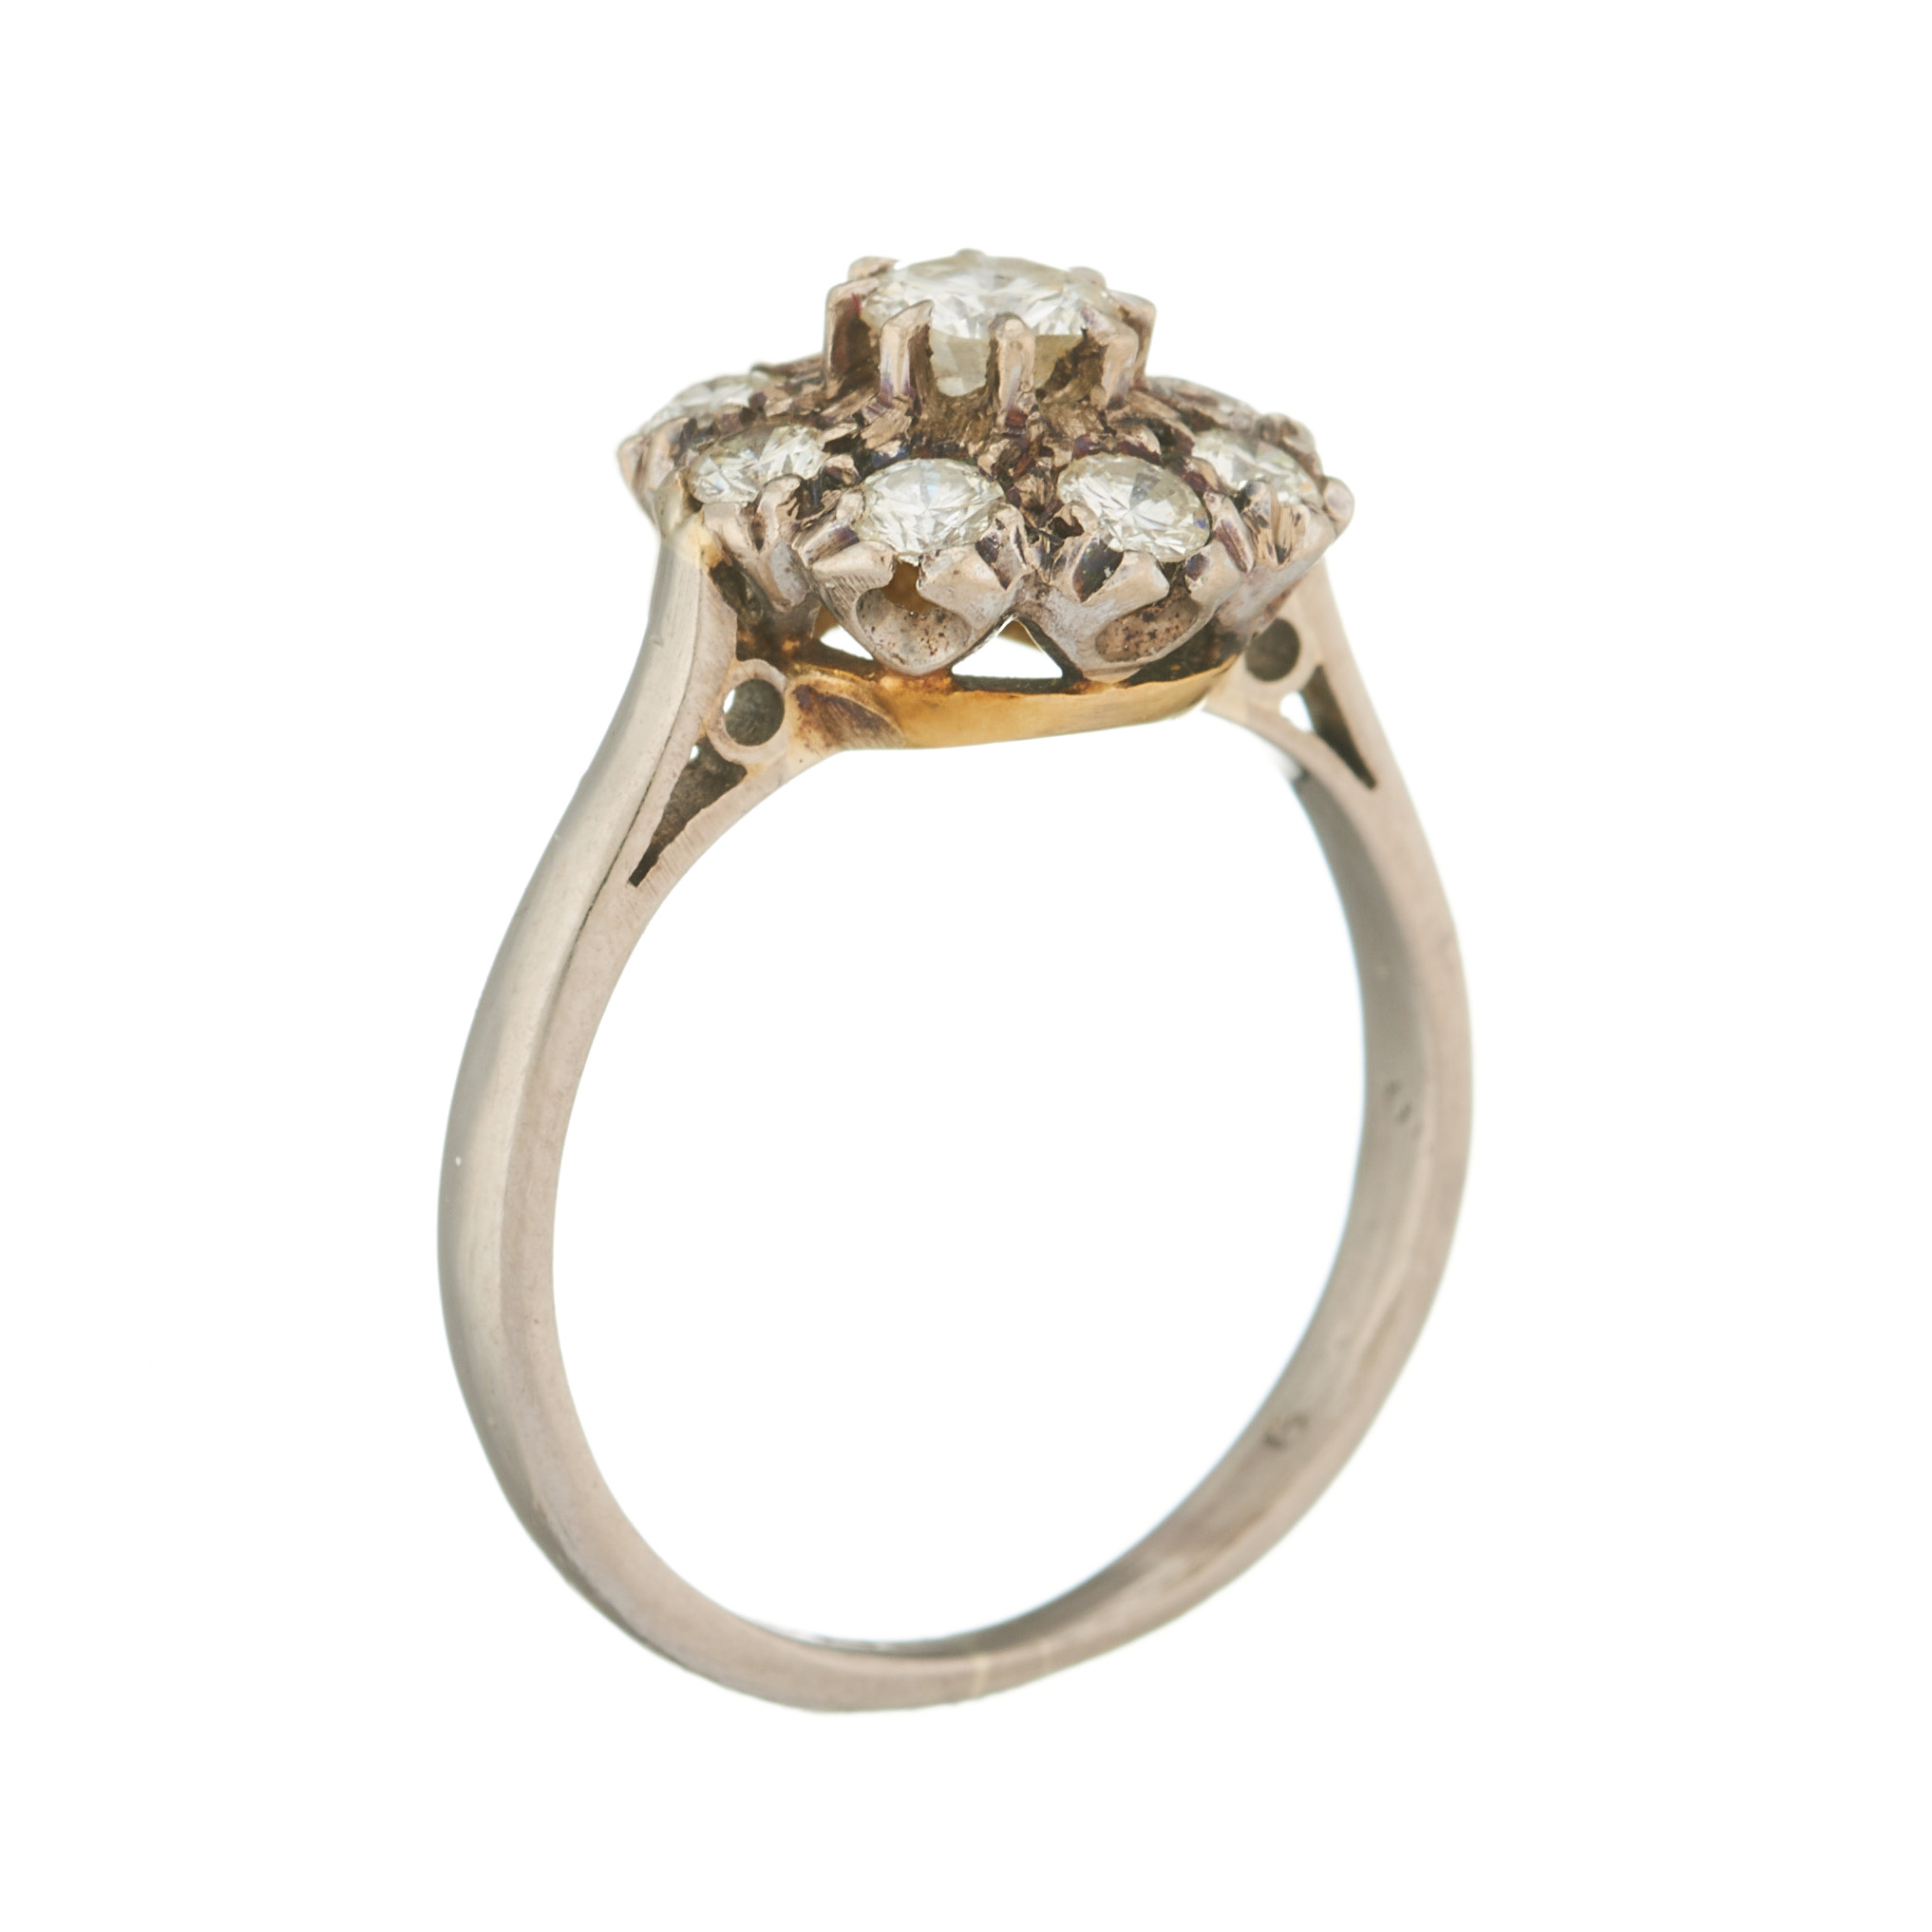 An 18ct gold diamond floral cluster ring - Image 2 of 2